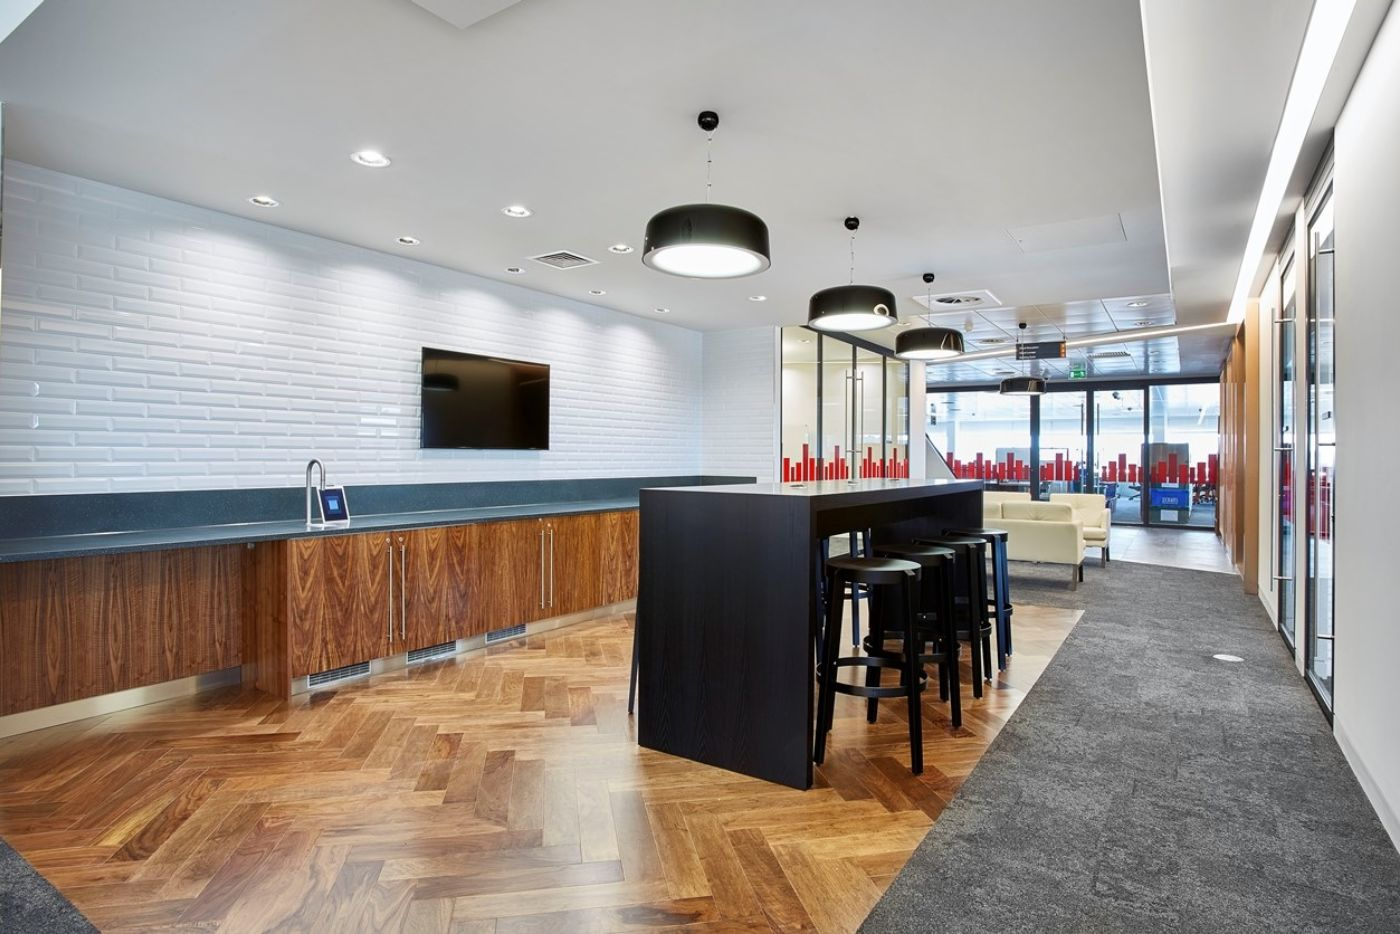 Office kitchen with white tiles and wooden flooring and high-seating